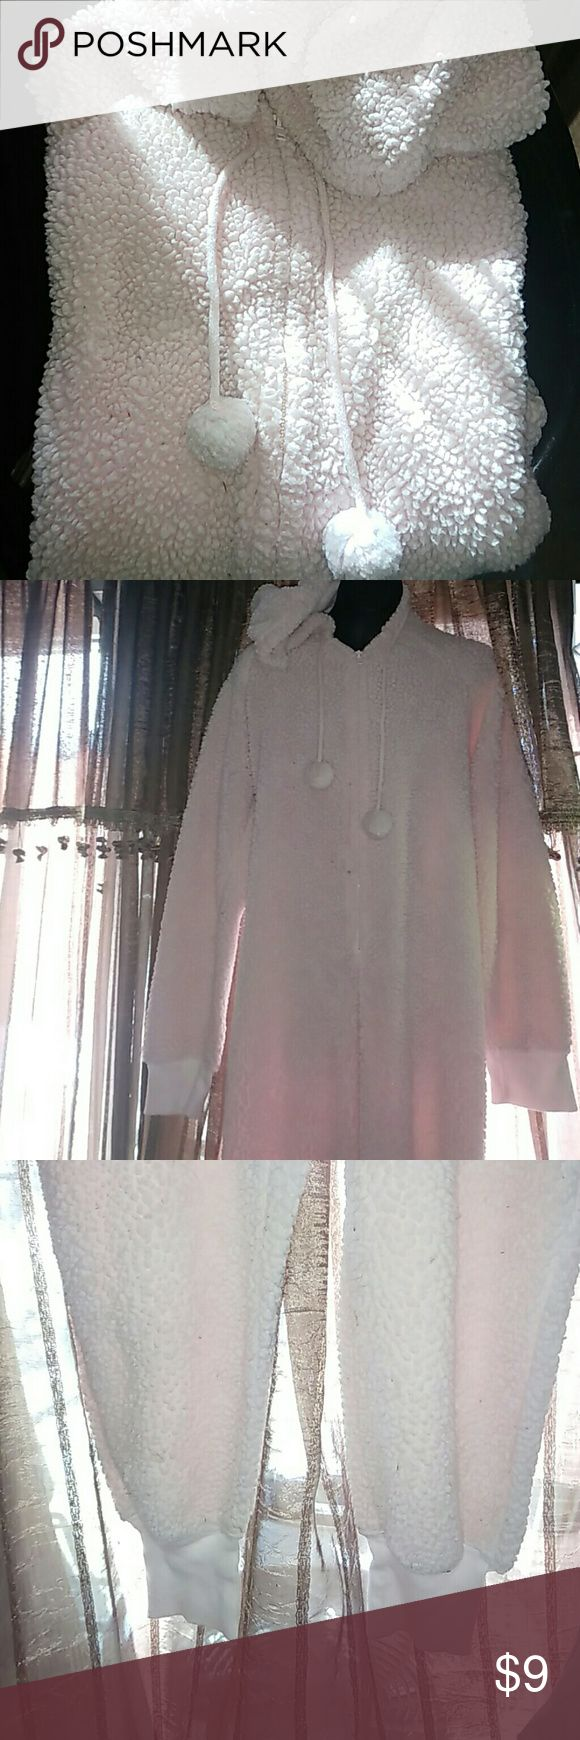 Women's Pink Plush Onesie pjs...medium Women's used one piece pajamas. Thick pale pink colored footless, Zip-up, hooded, onesie style pajamas. They have a drawstring hood with pink puff balls on the ends. There are some spots of blue on the front as seen in 5th photo. I will try to remove before shipping, but buyer be aware that they may not come out. Xhilaration Intimates & Sleepwear Pajamas